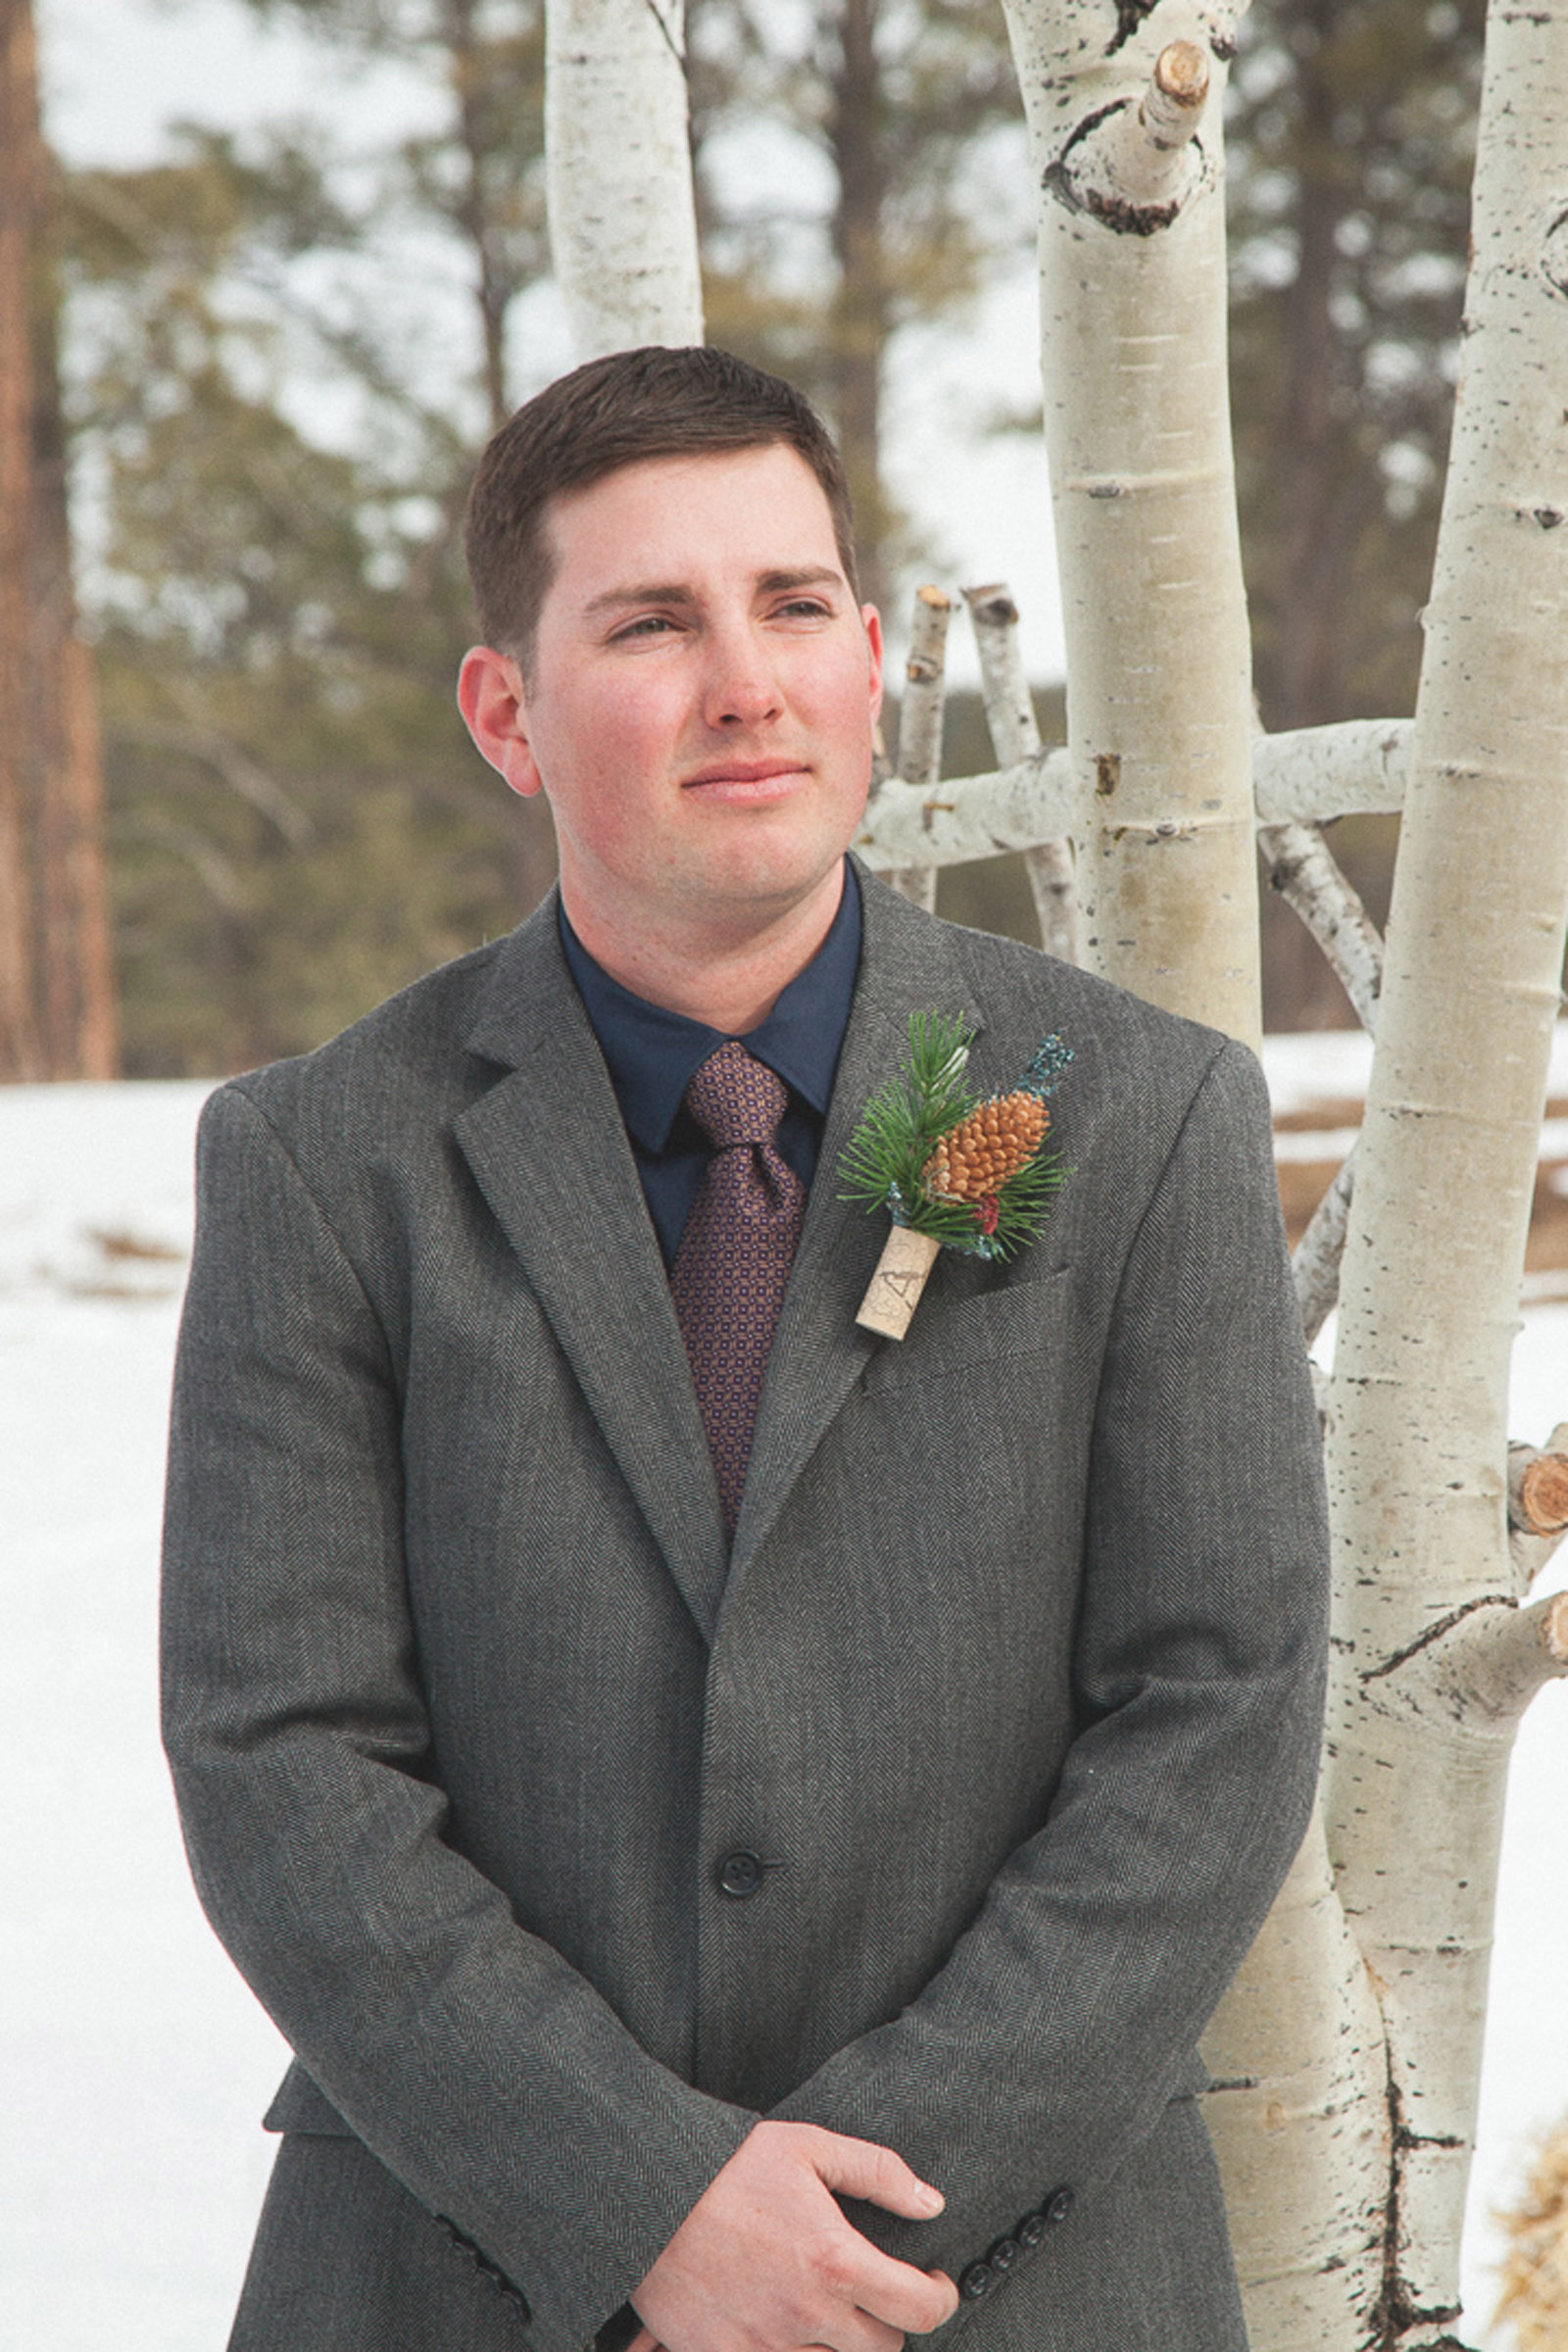 087-wedding-ceremony-in-pagosa-springs-wedding-photographer-snow-winter-wedding